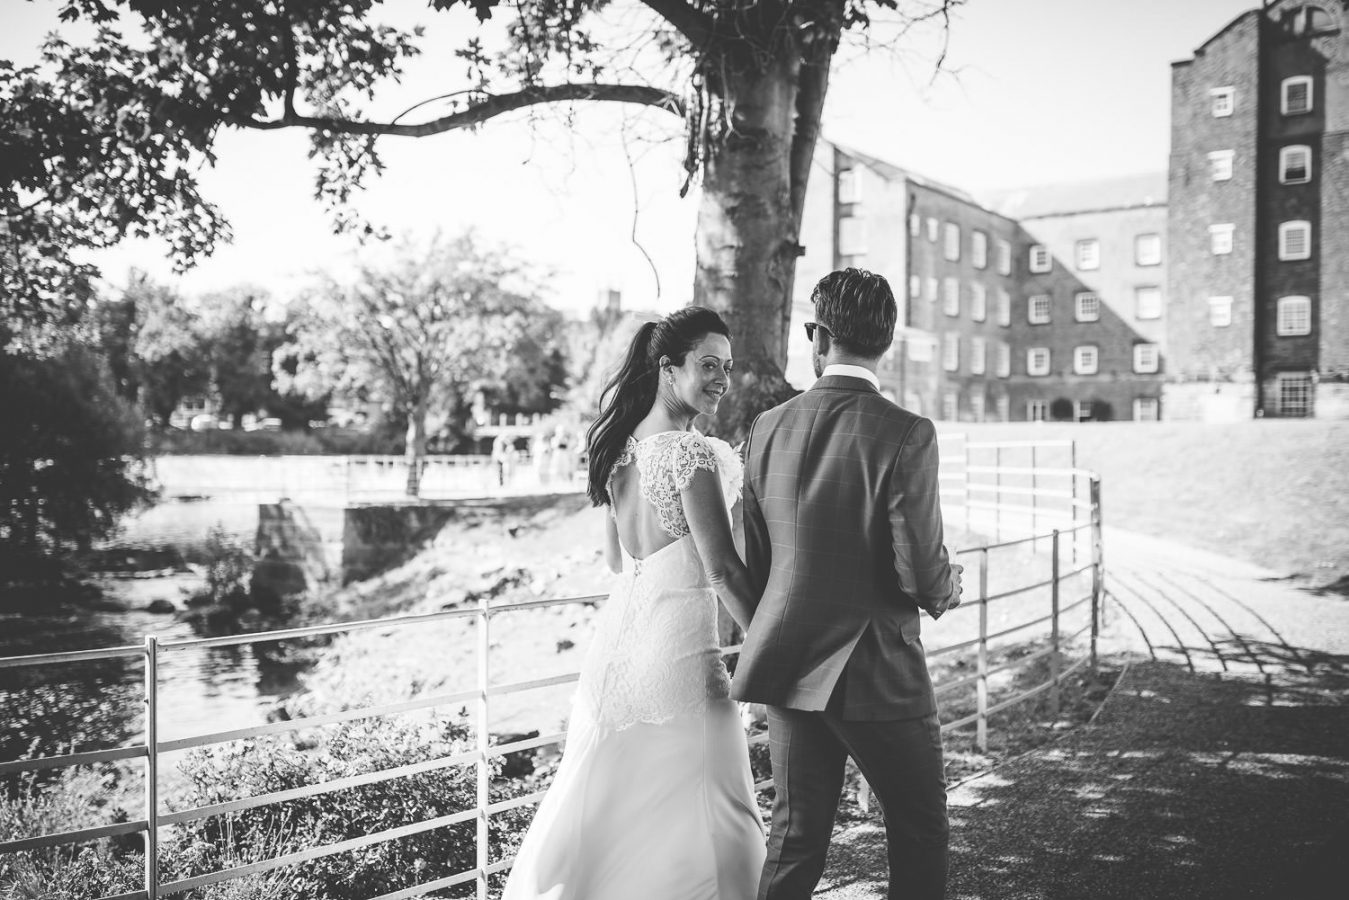 Bride and groom at The West Mill Wedding venue, Derbyshire